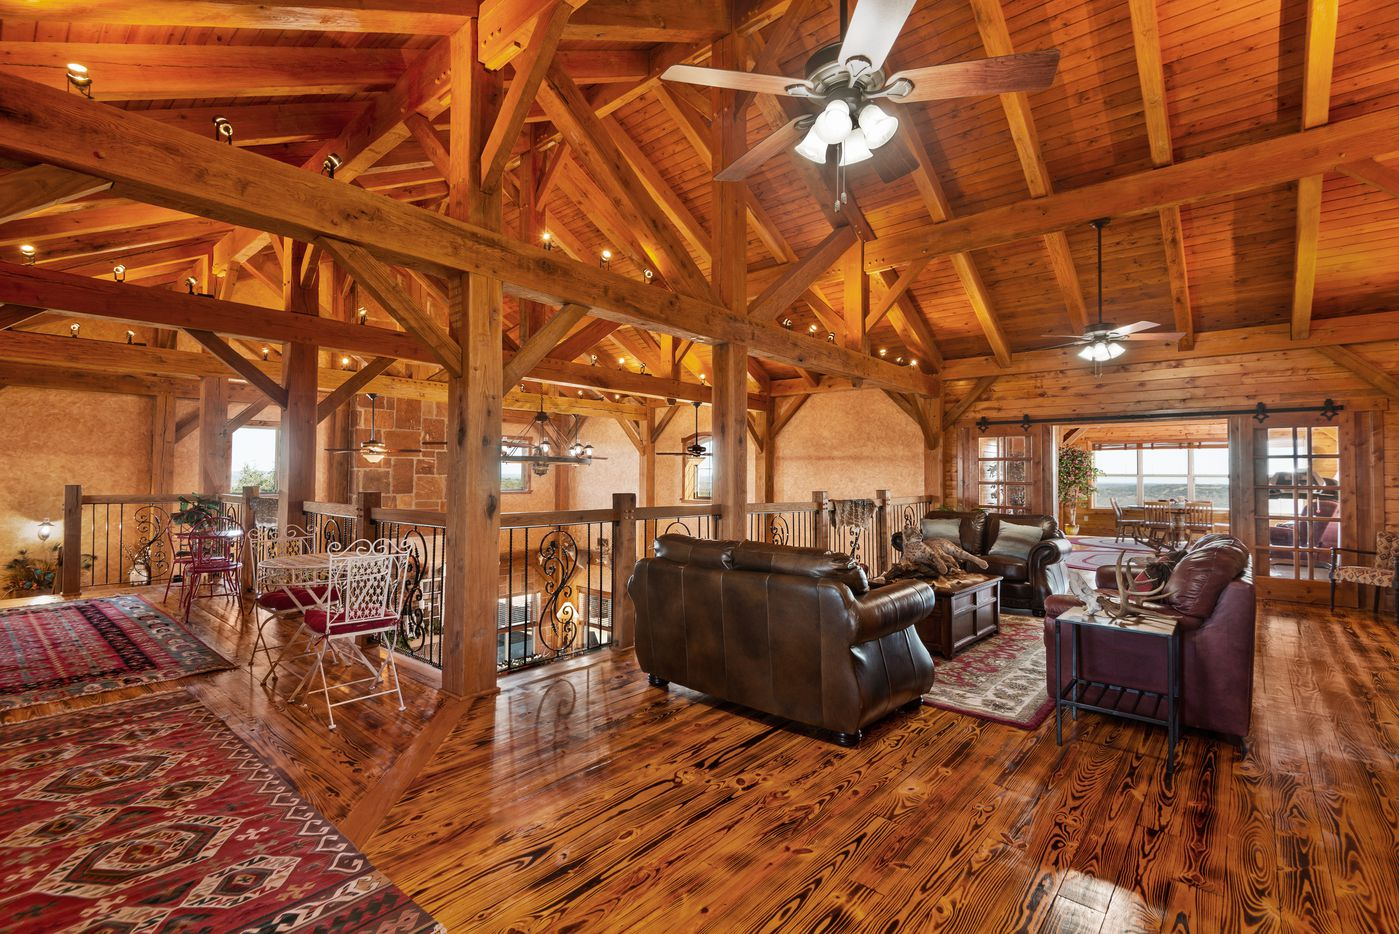 The lodge style ranch house is six years old.